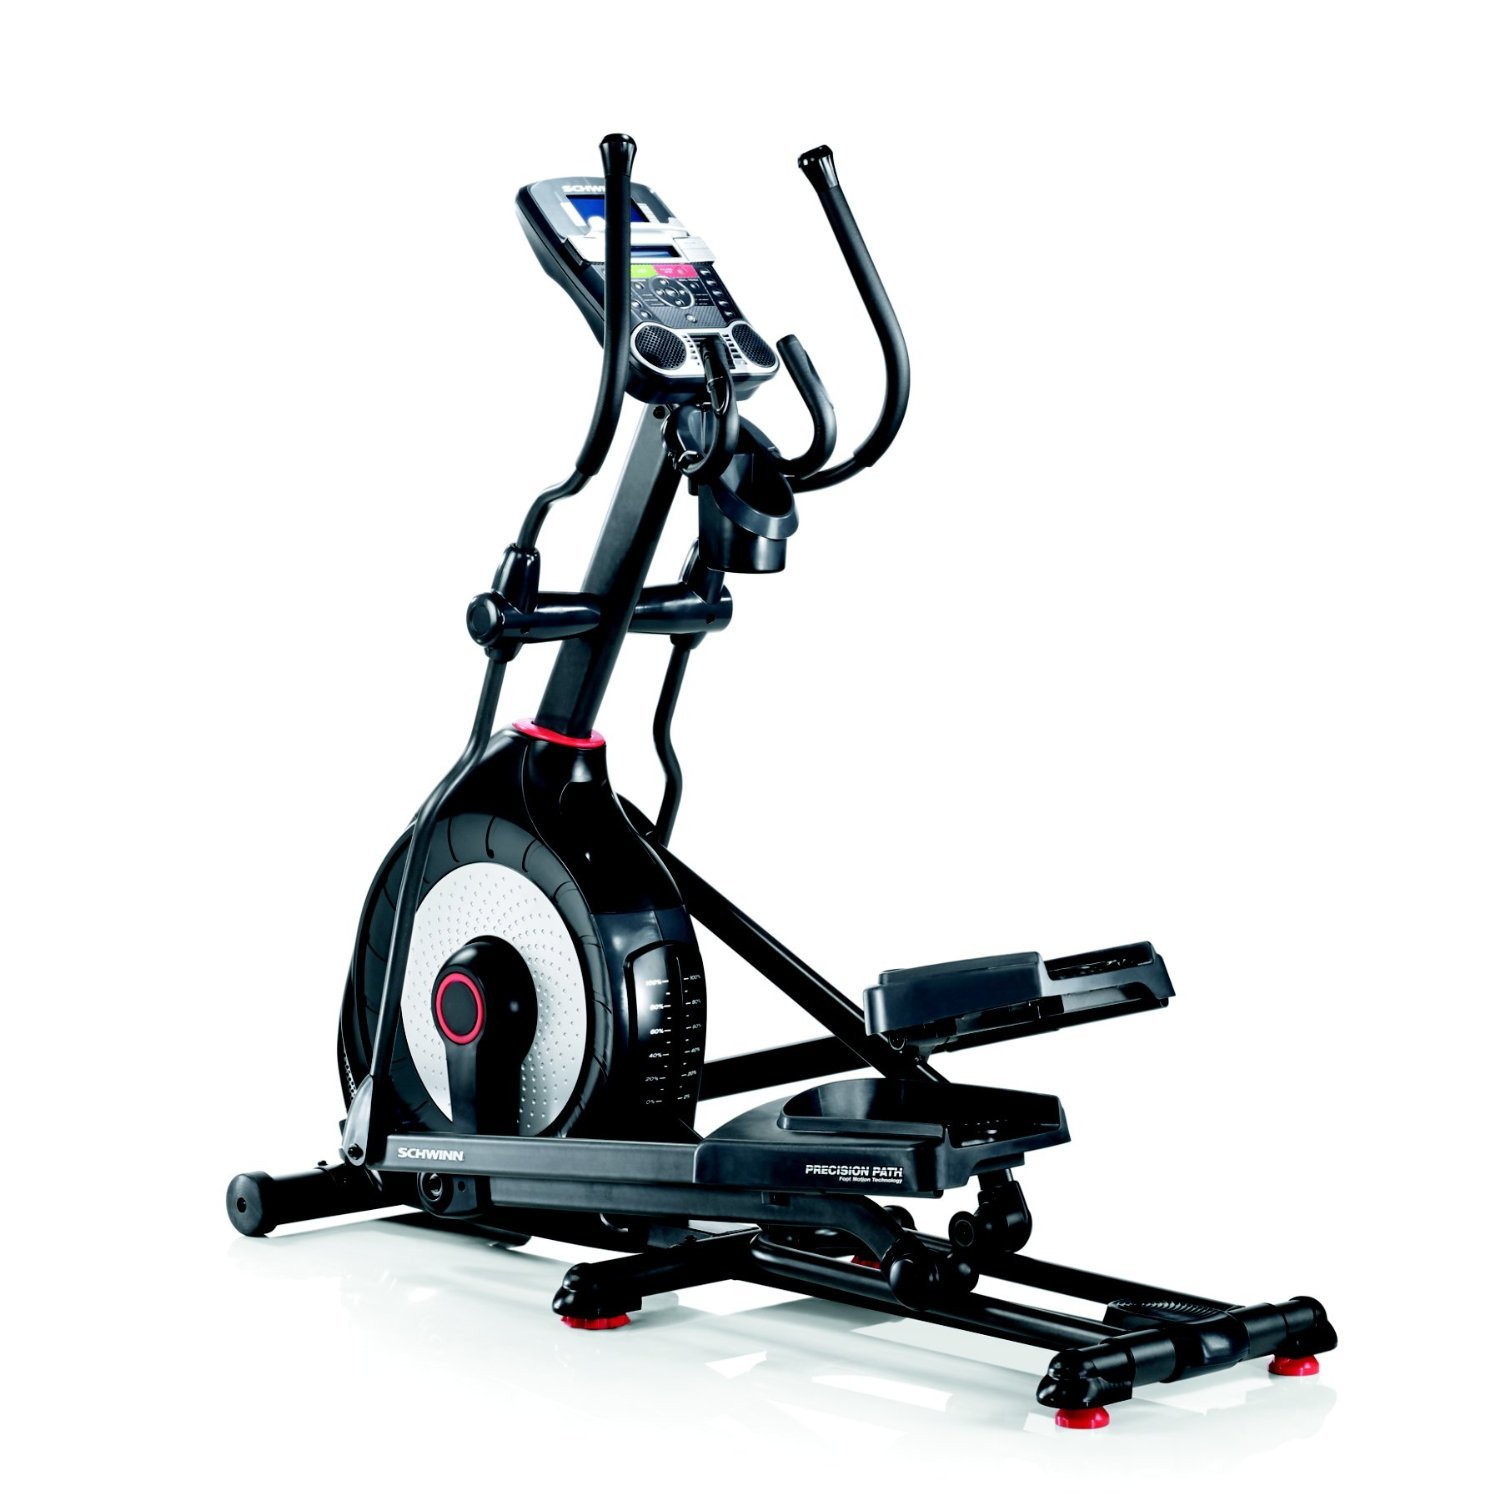 the Schwinn 470 Elliptical on full display